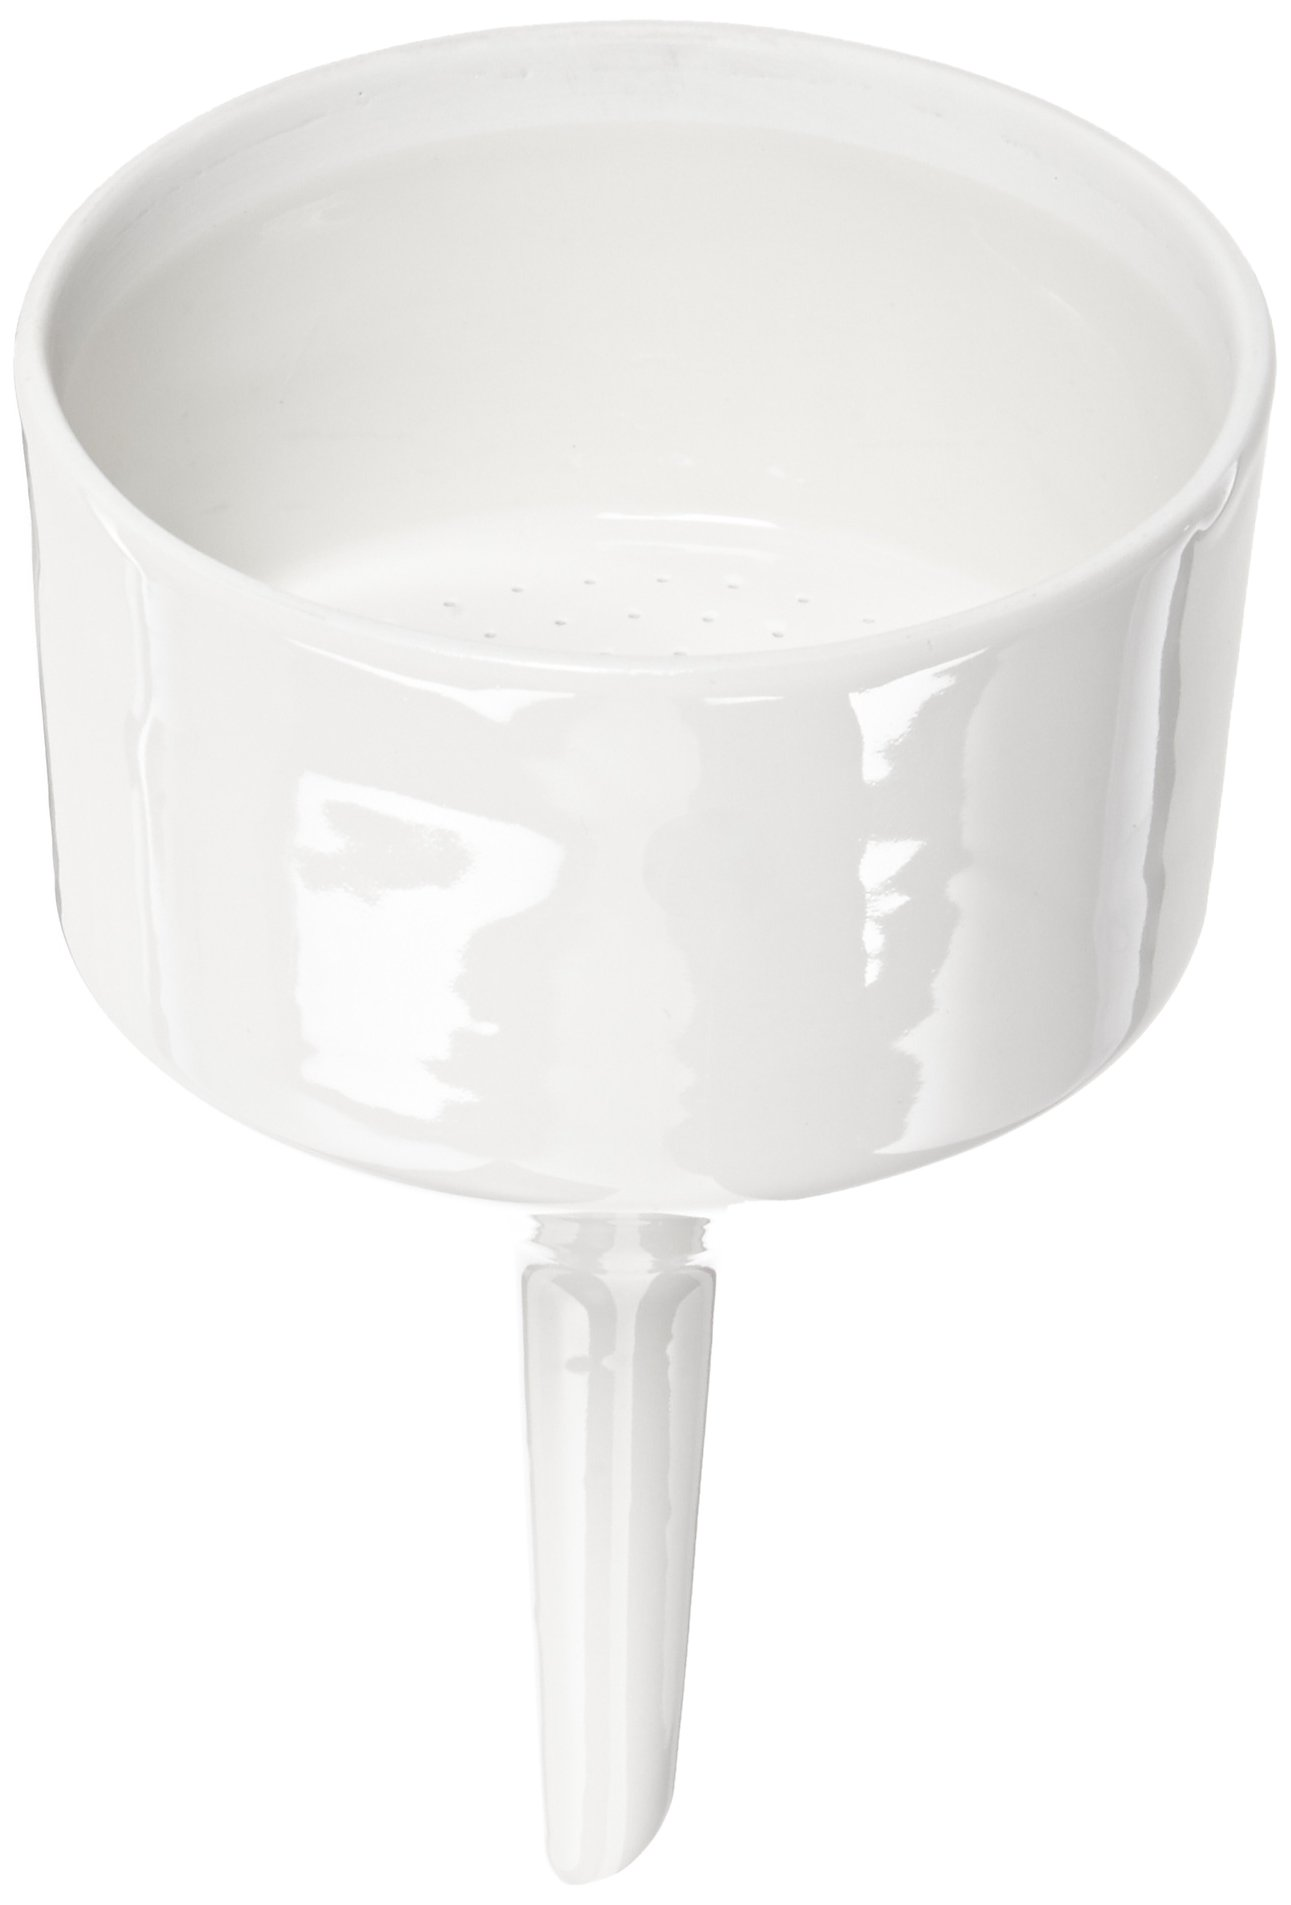 CoorsTek 60243 Porcelain Ceramic Buchner Funnel with Fixed Perforated Plate, 320mL Capacity, 160mm Height, 90mm Filter Paper Diameter